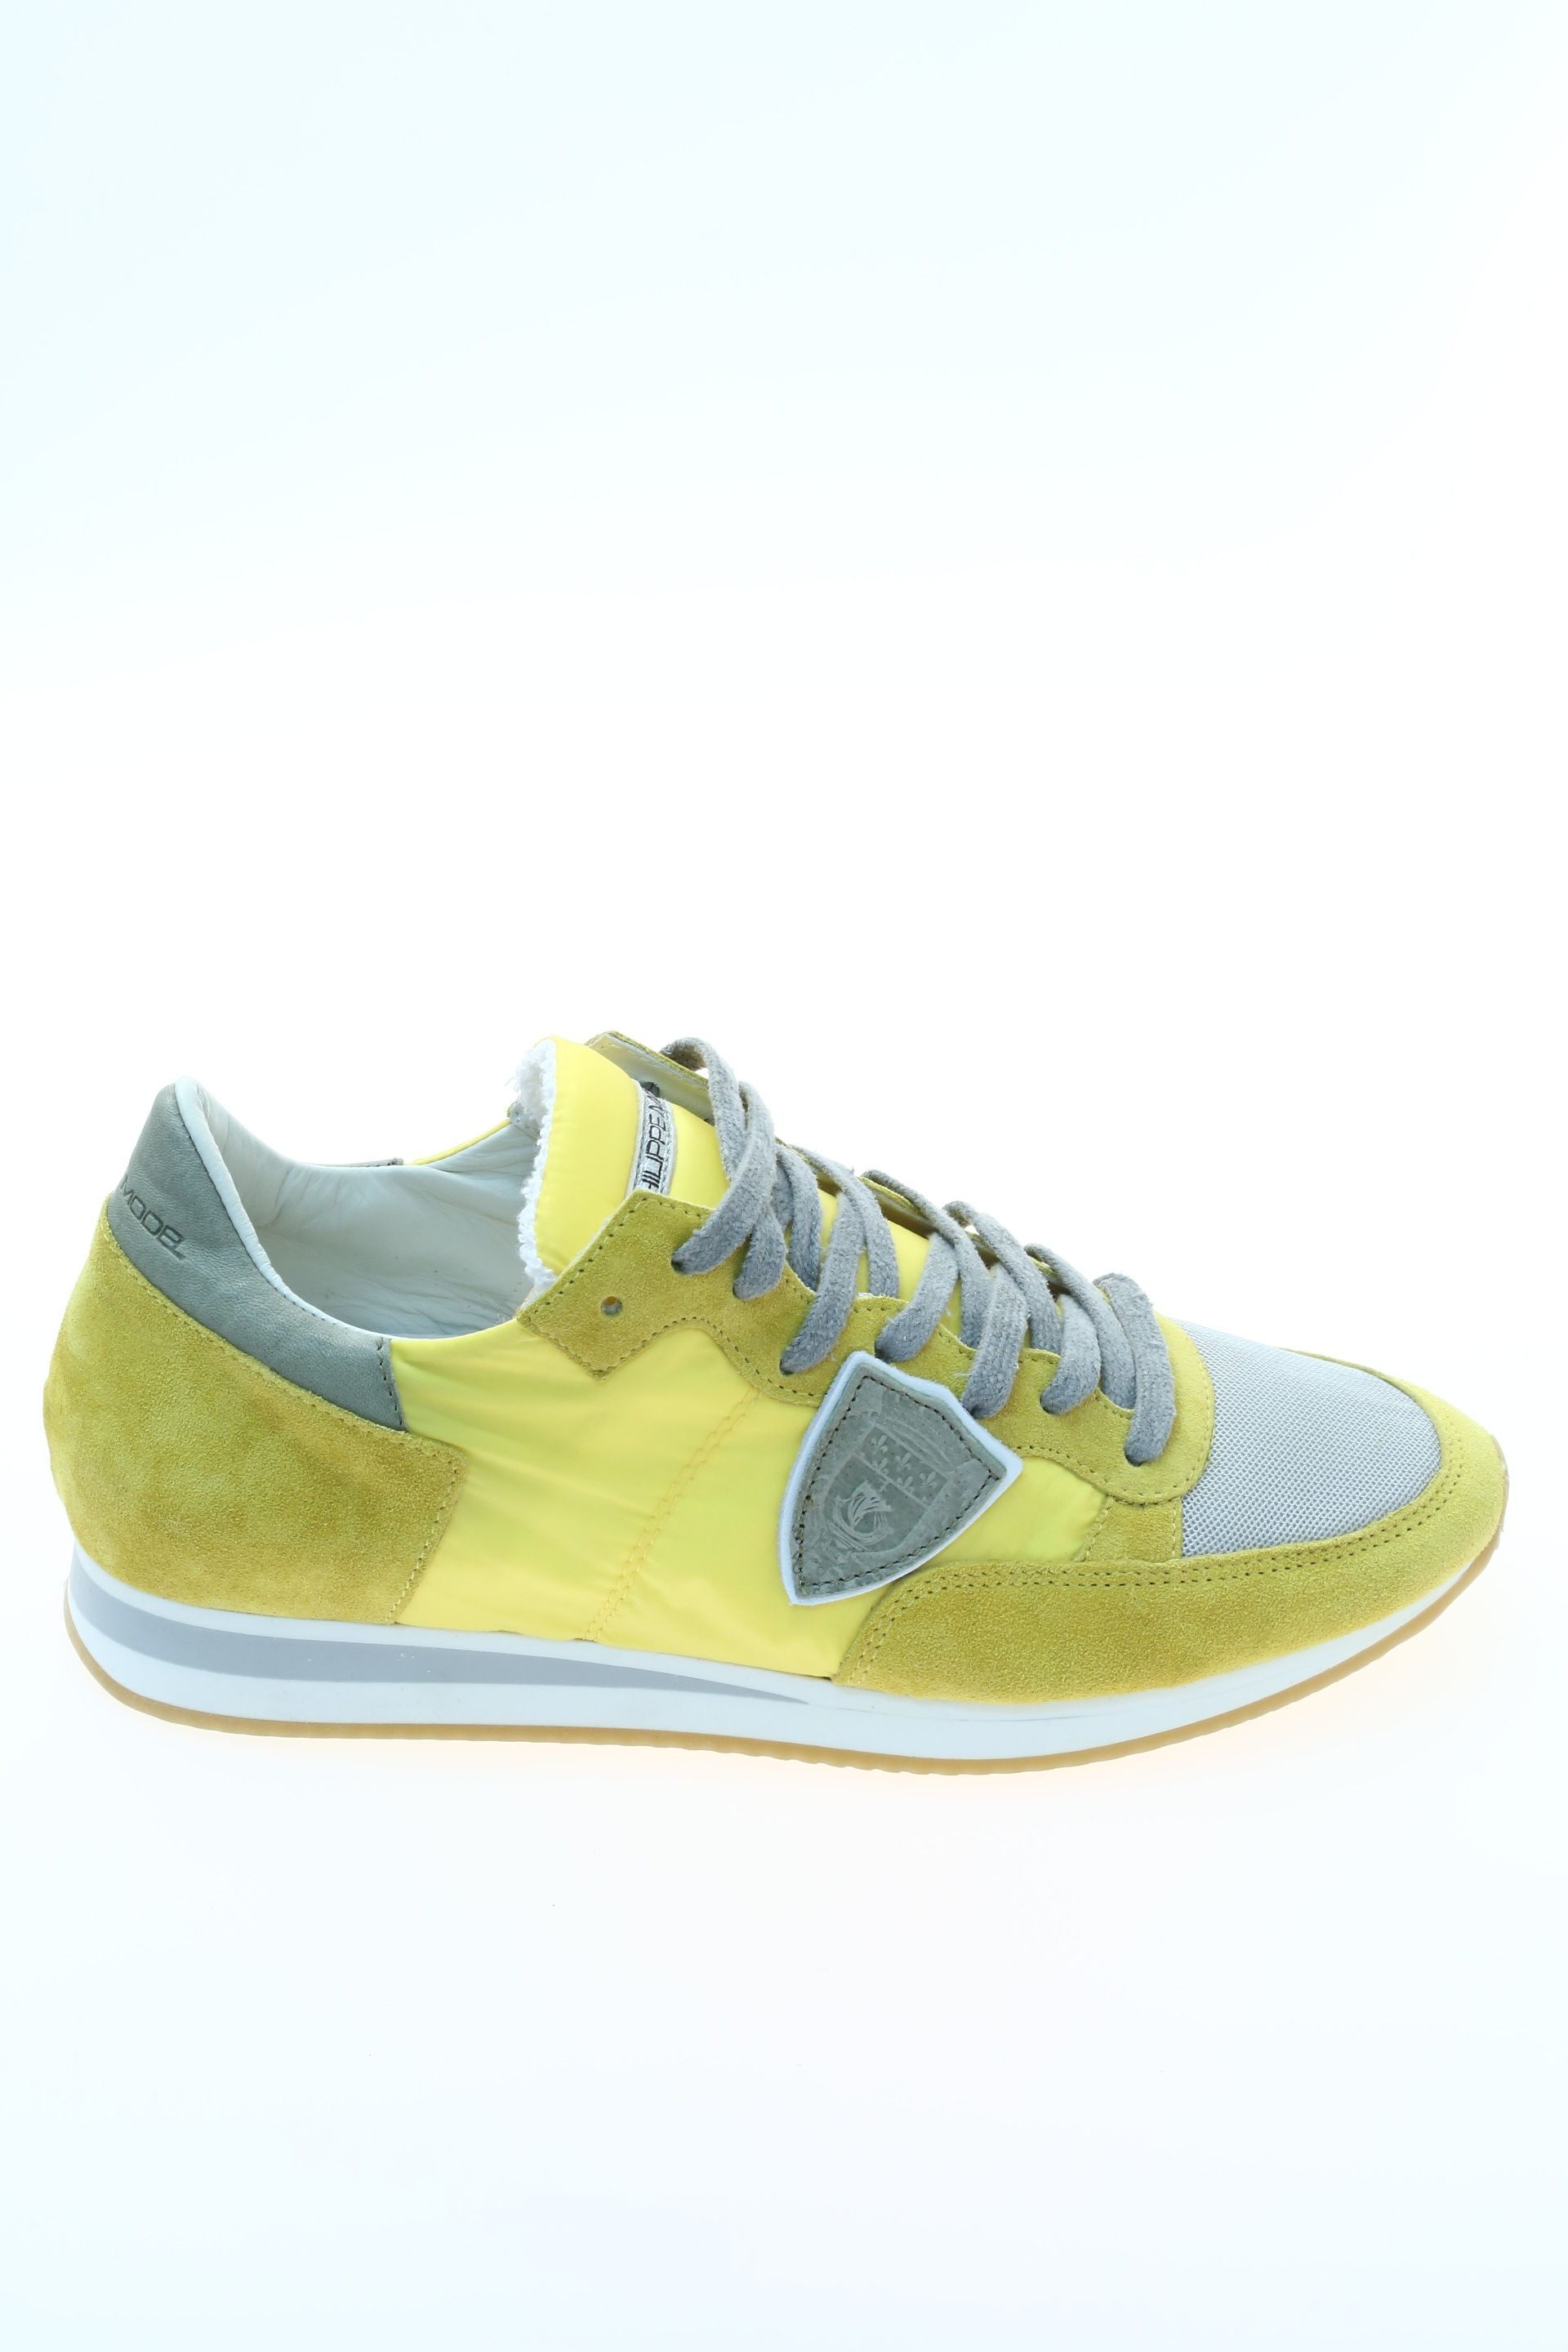 suede yellow sneaker philippe model. Black Bedroom Furniture Sets. Home Design Ideas